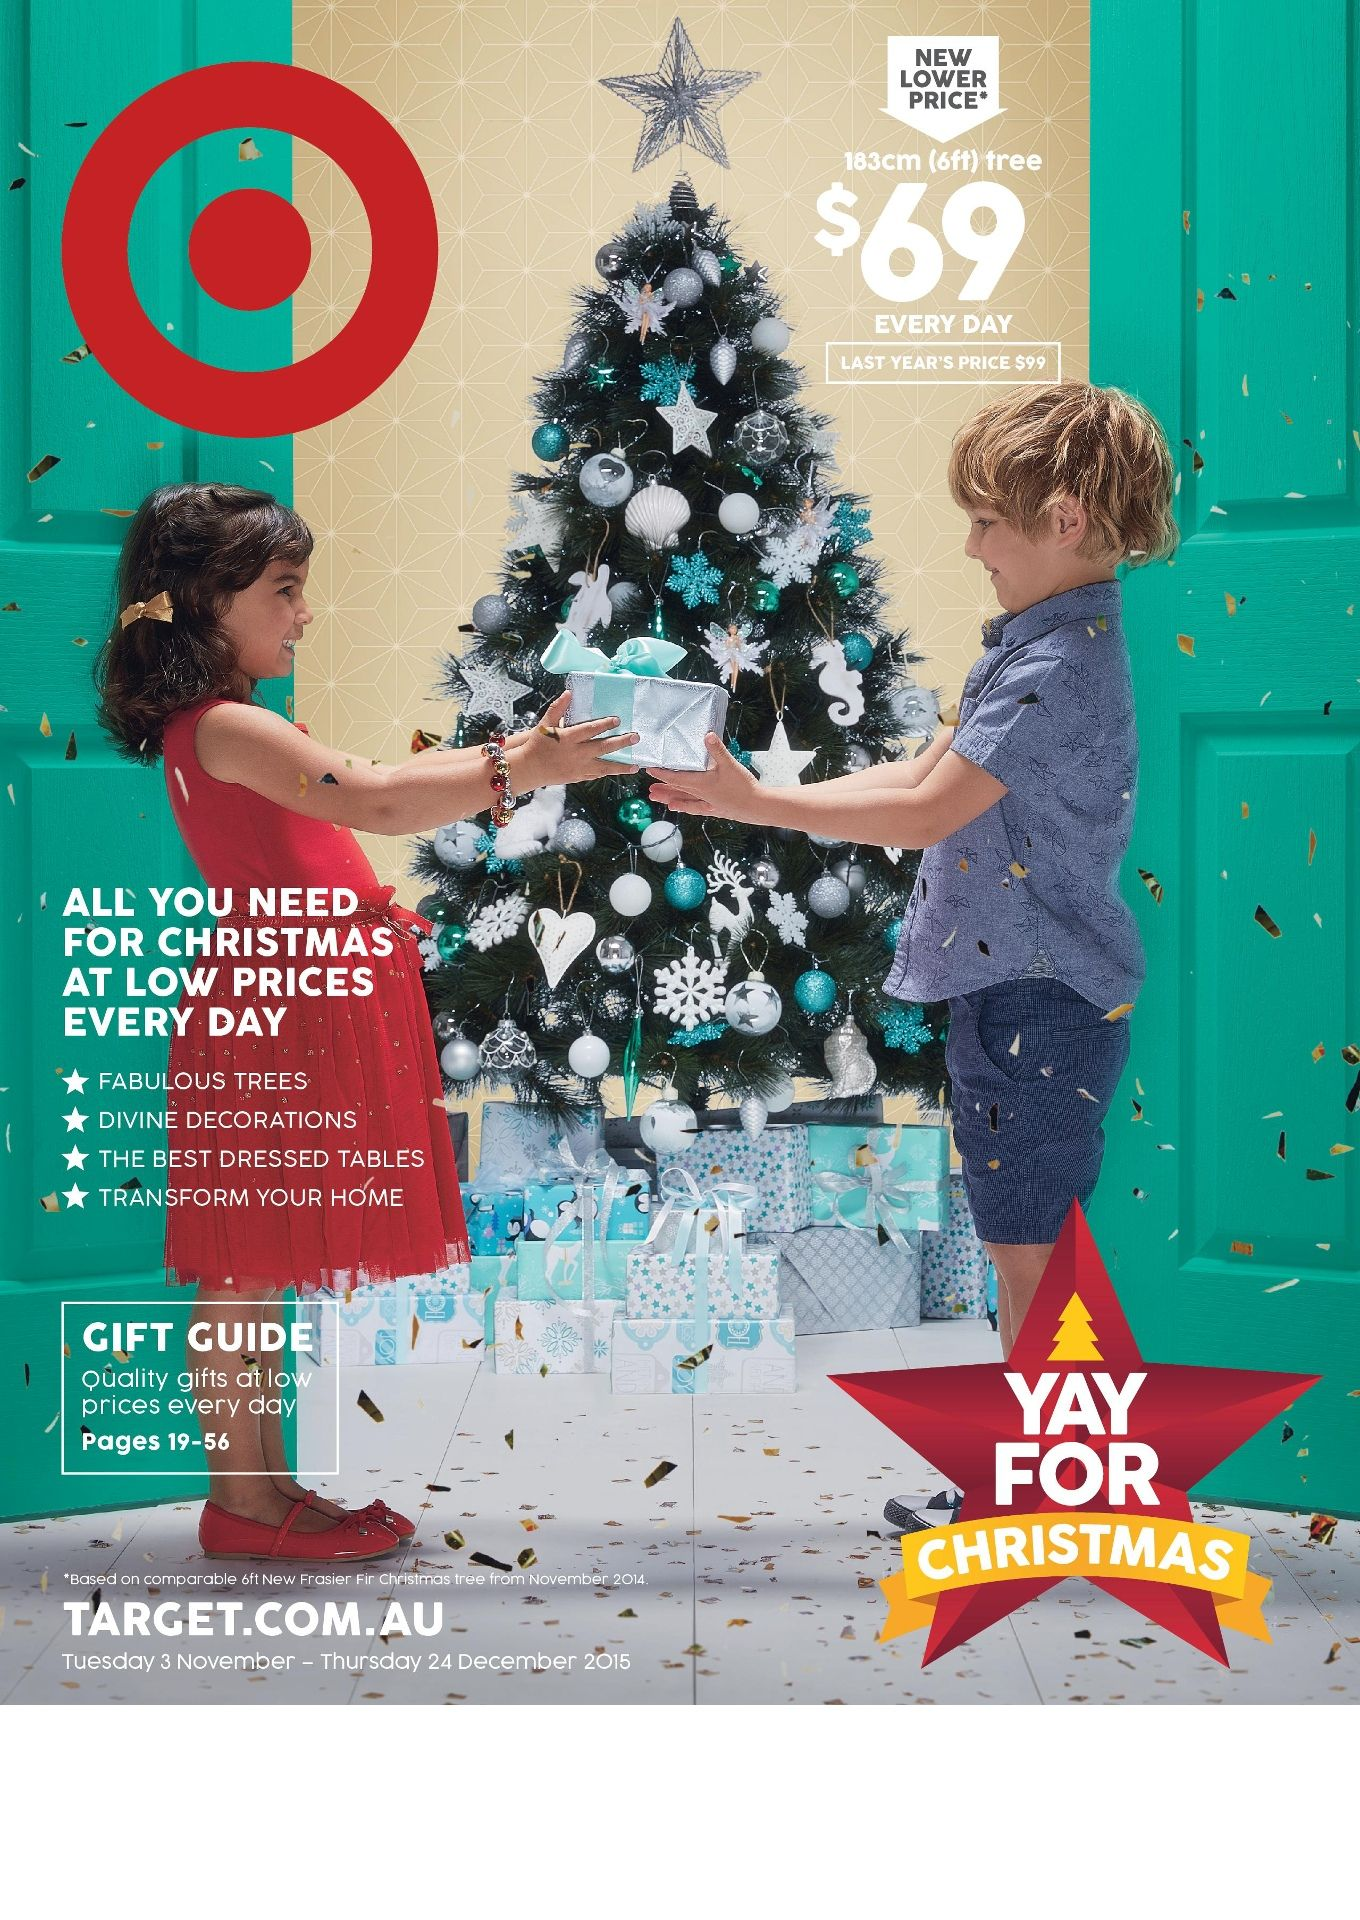 target australia sale valid 3 november 24 december - Target Christmas Decorations Sale